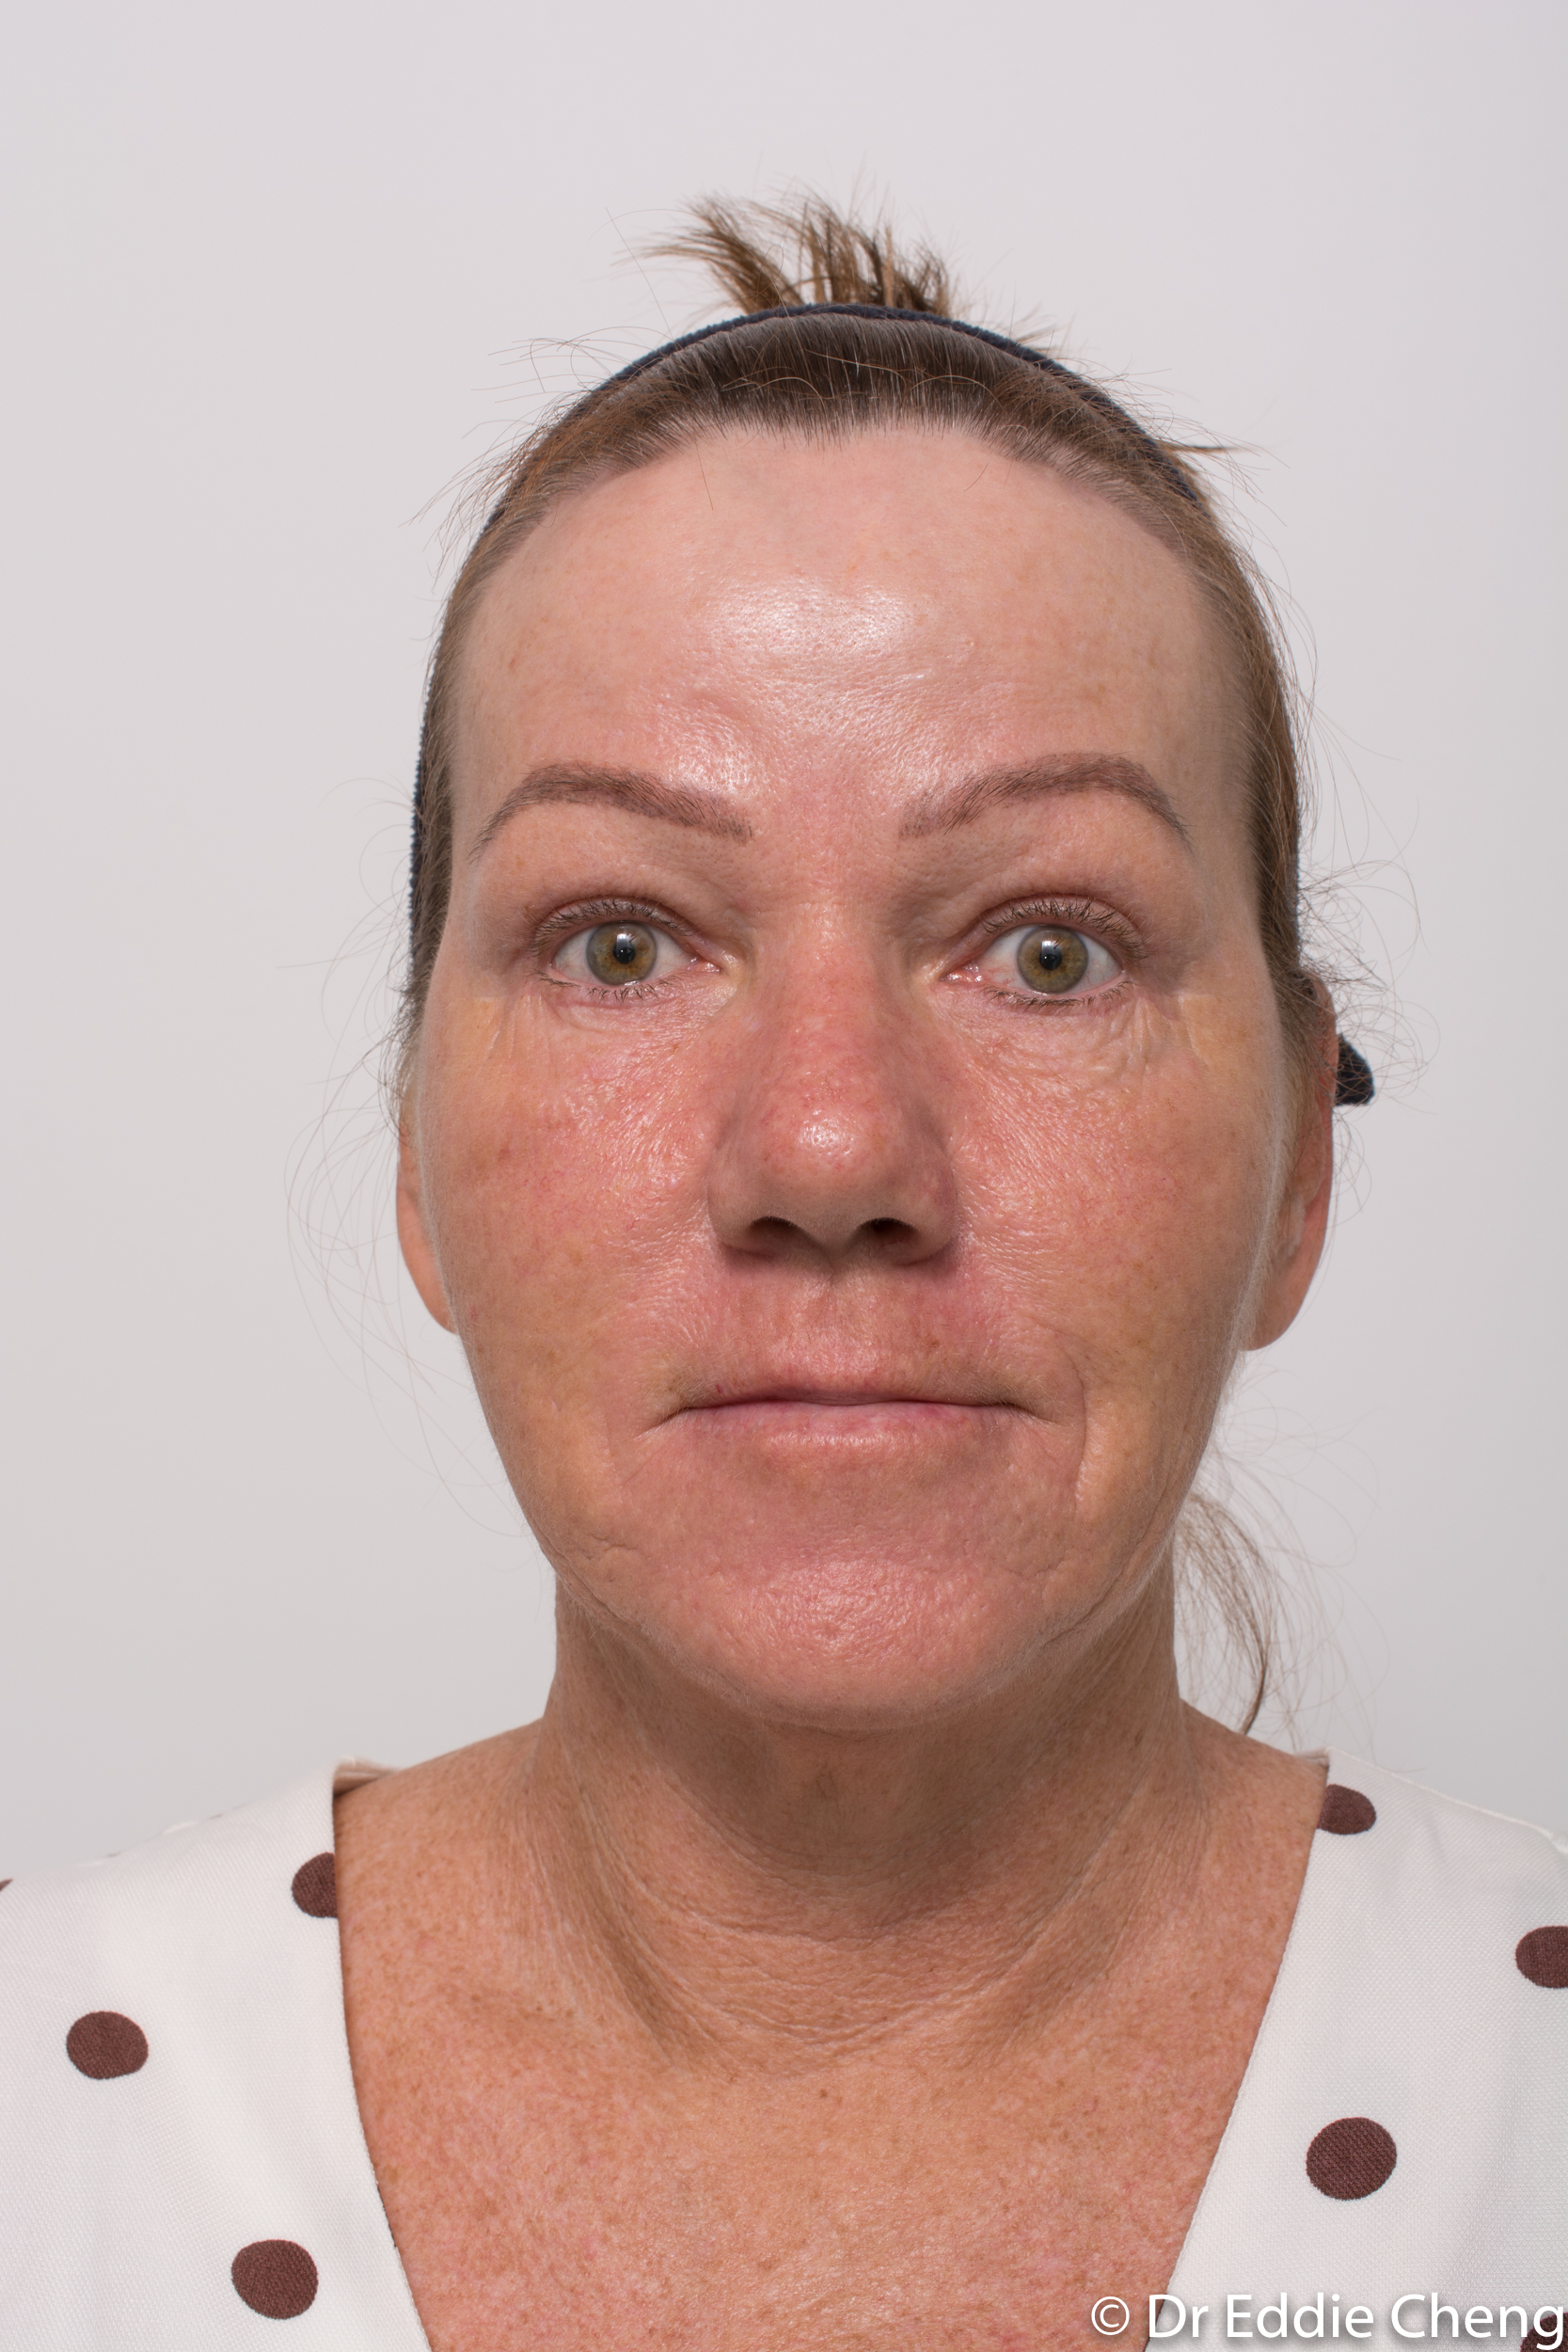 Brow lift dr eddie cheng blepharoplasty pre and post operative brisbane surgeon -6-2